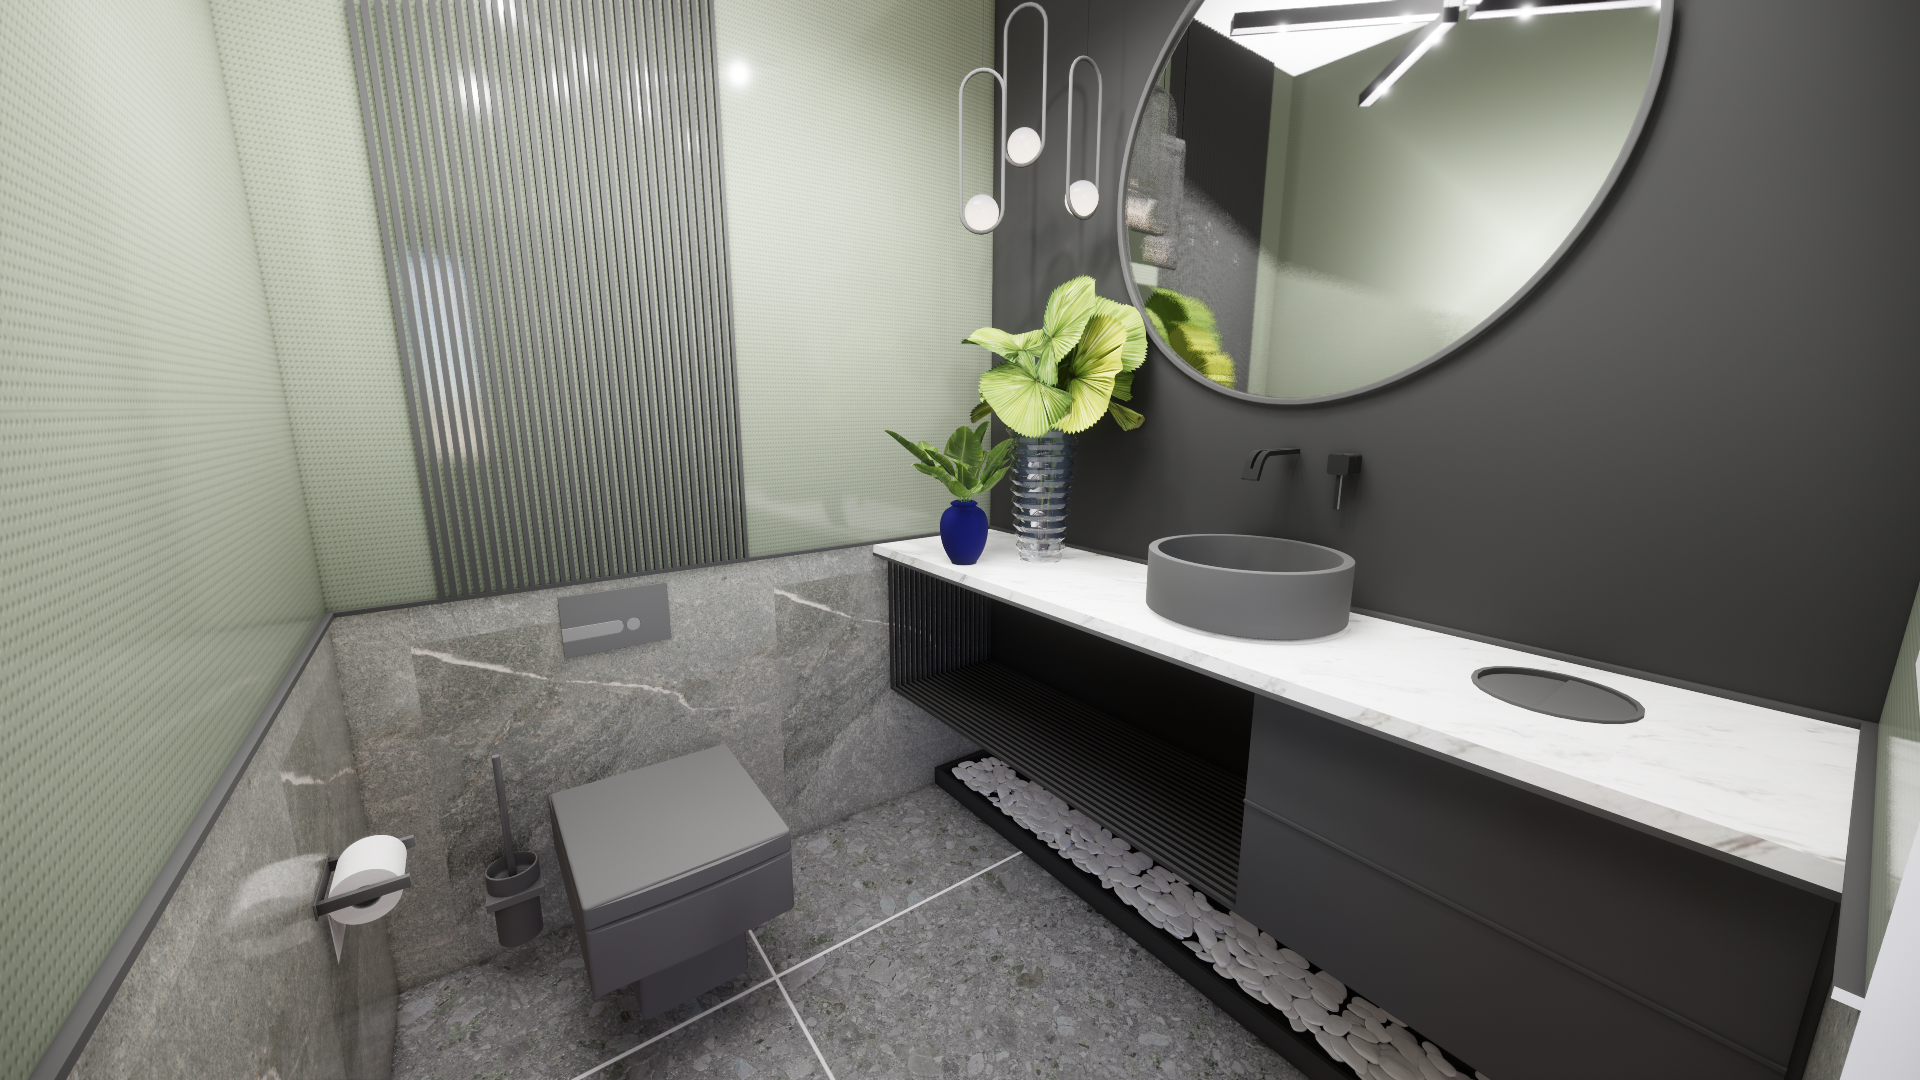 wdclinic_render_026.png